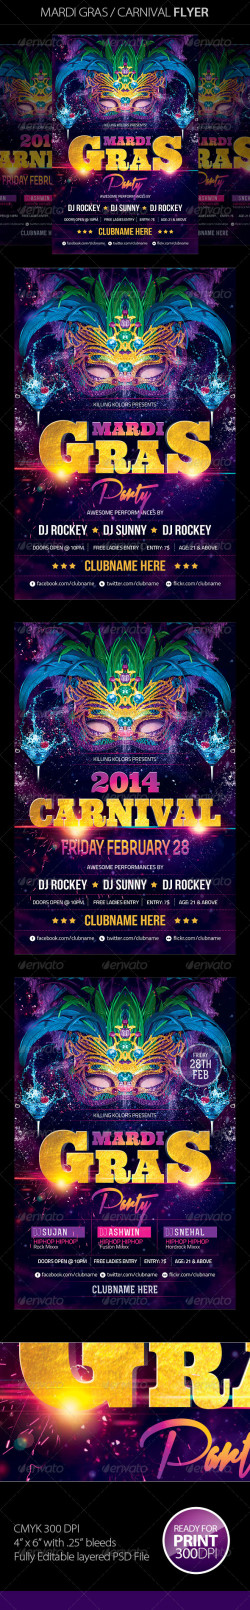 Mardi Gras Carnival Flyer_preview